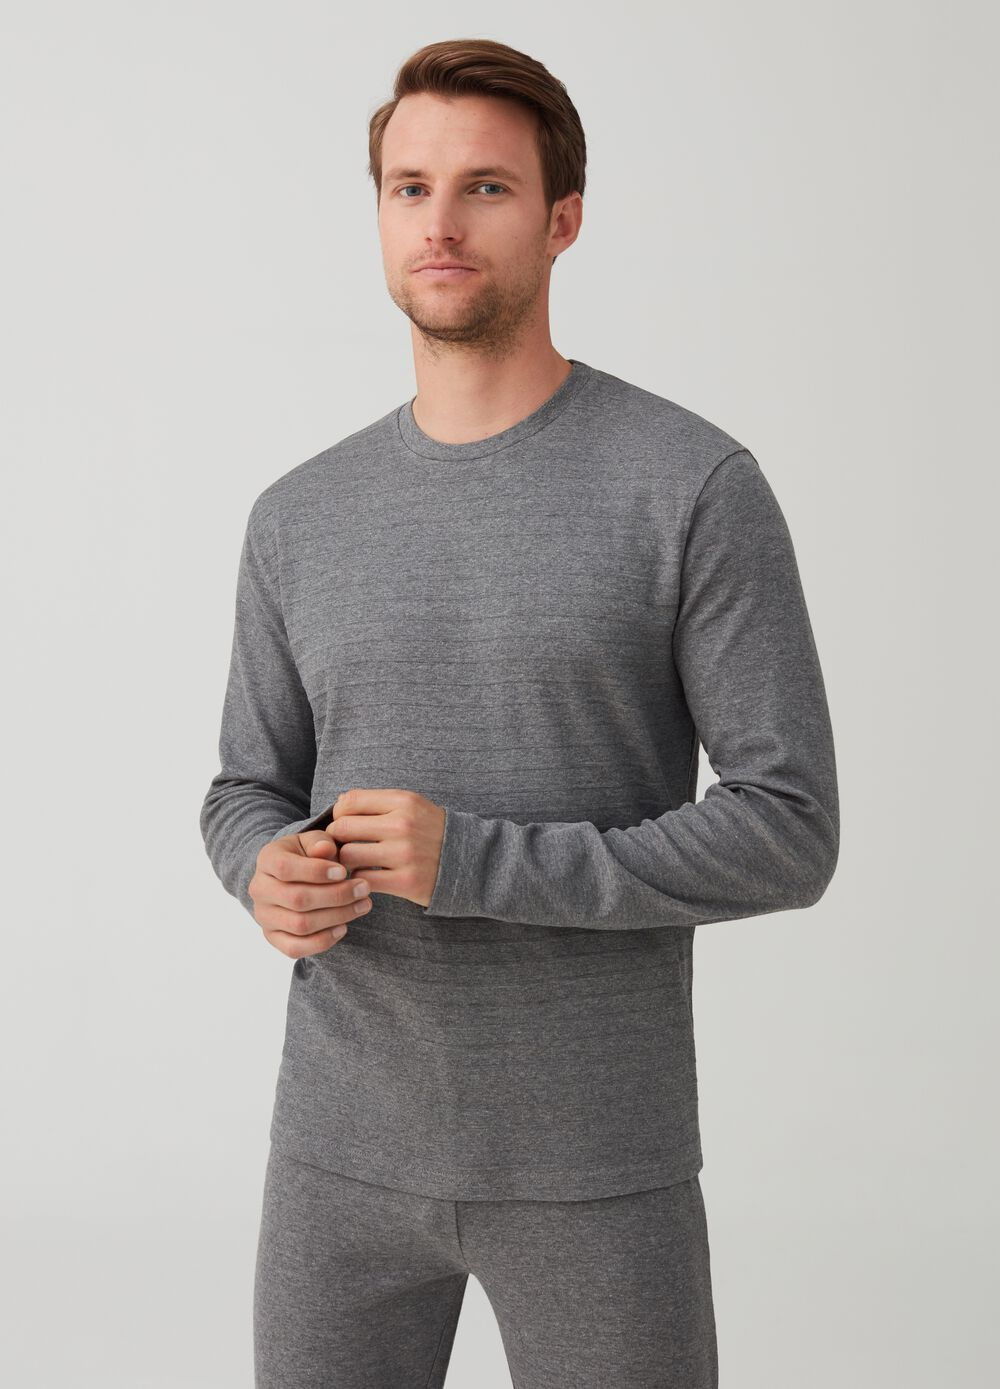 Crew neck pyjamas with jacquard pattern